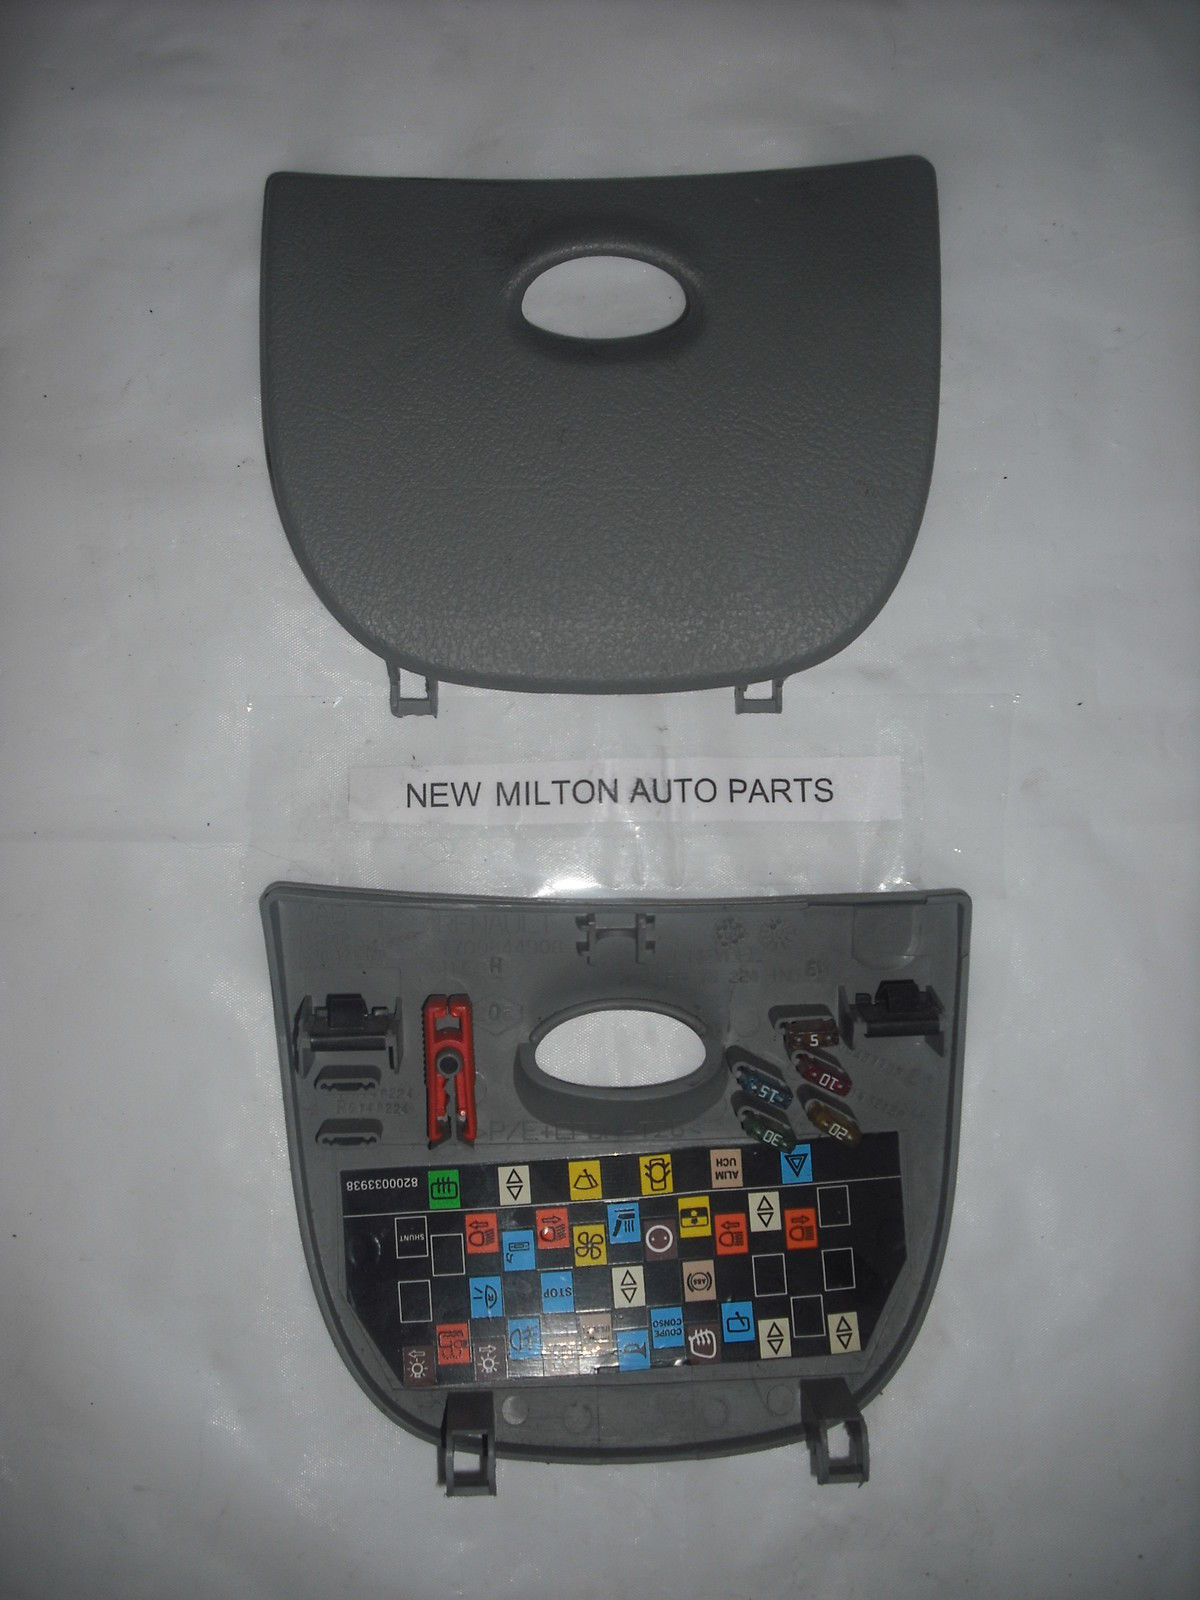 hight resolution of 1996 2003 renault scenic mk1 dash fuse box cover trim panel door light grey